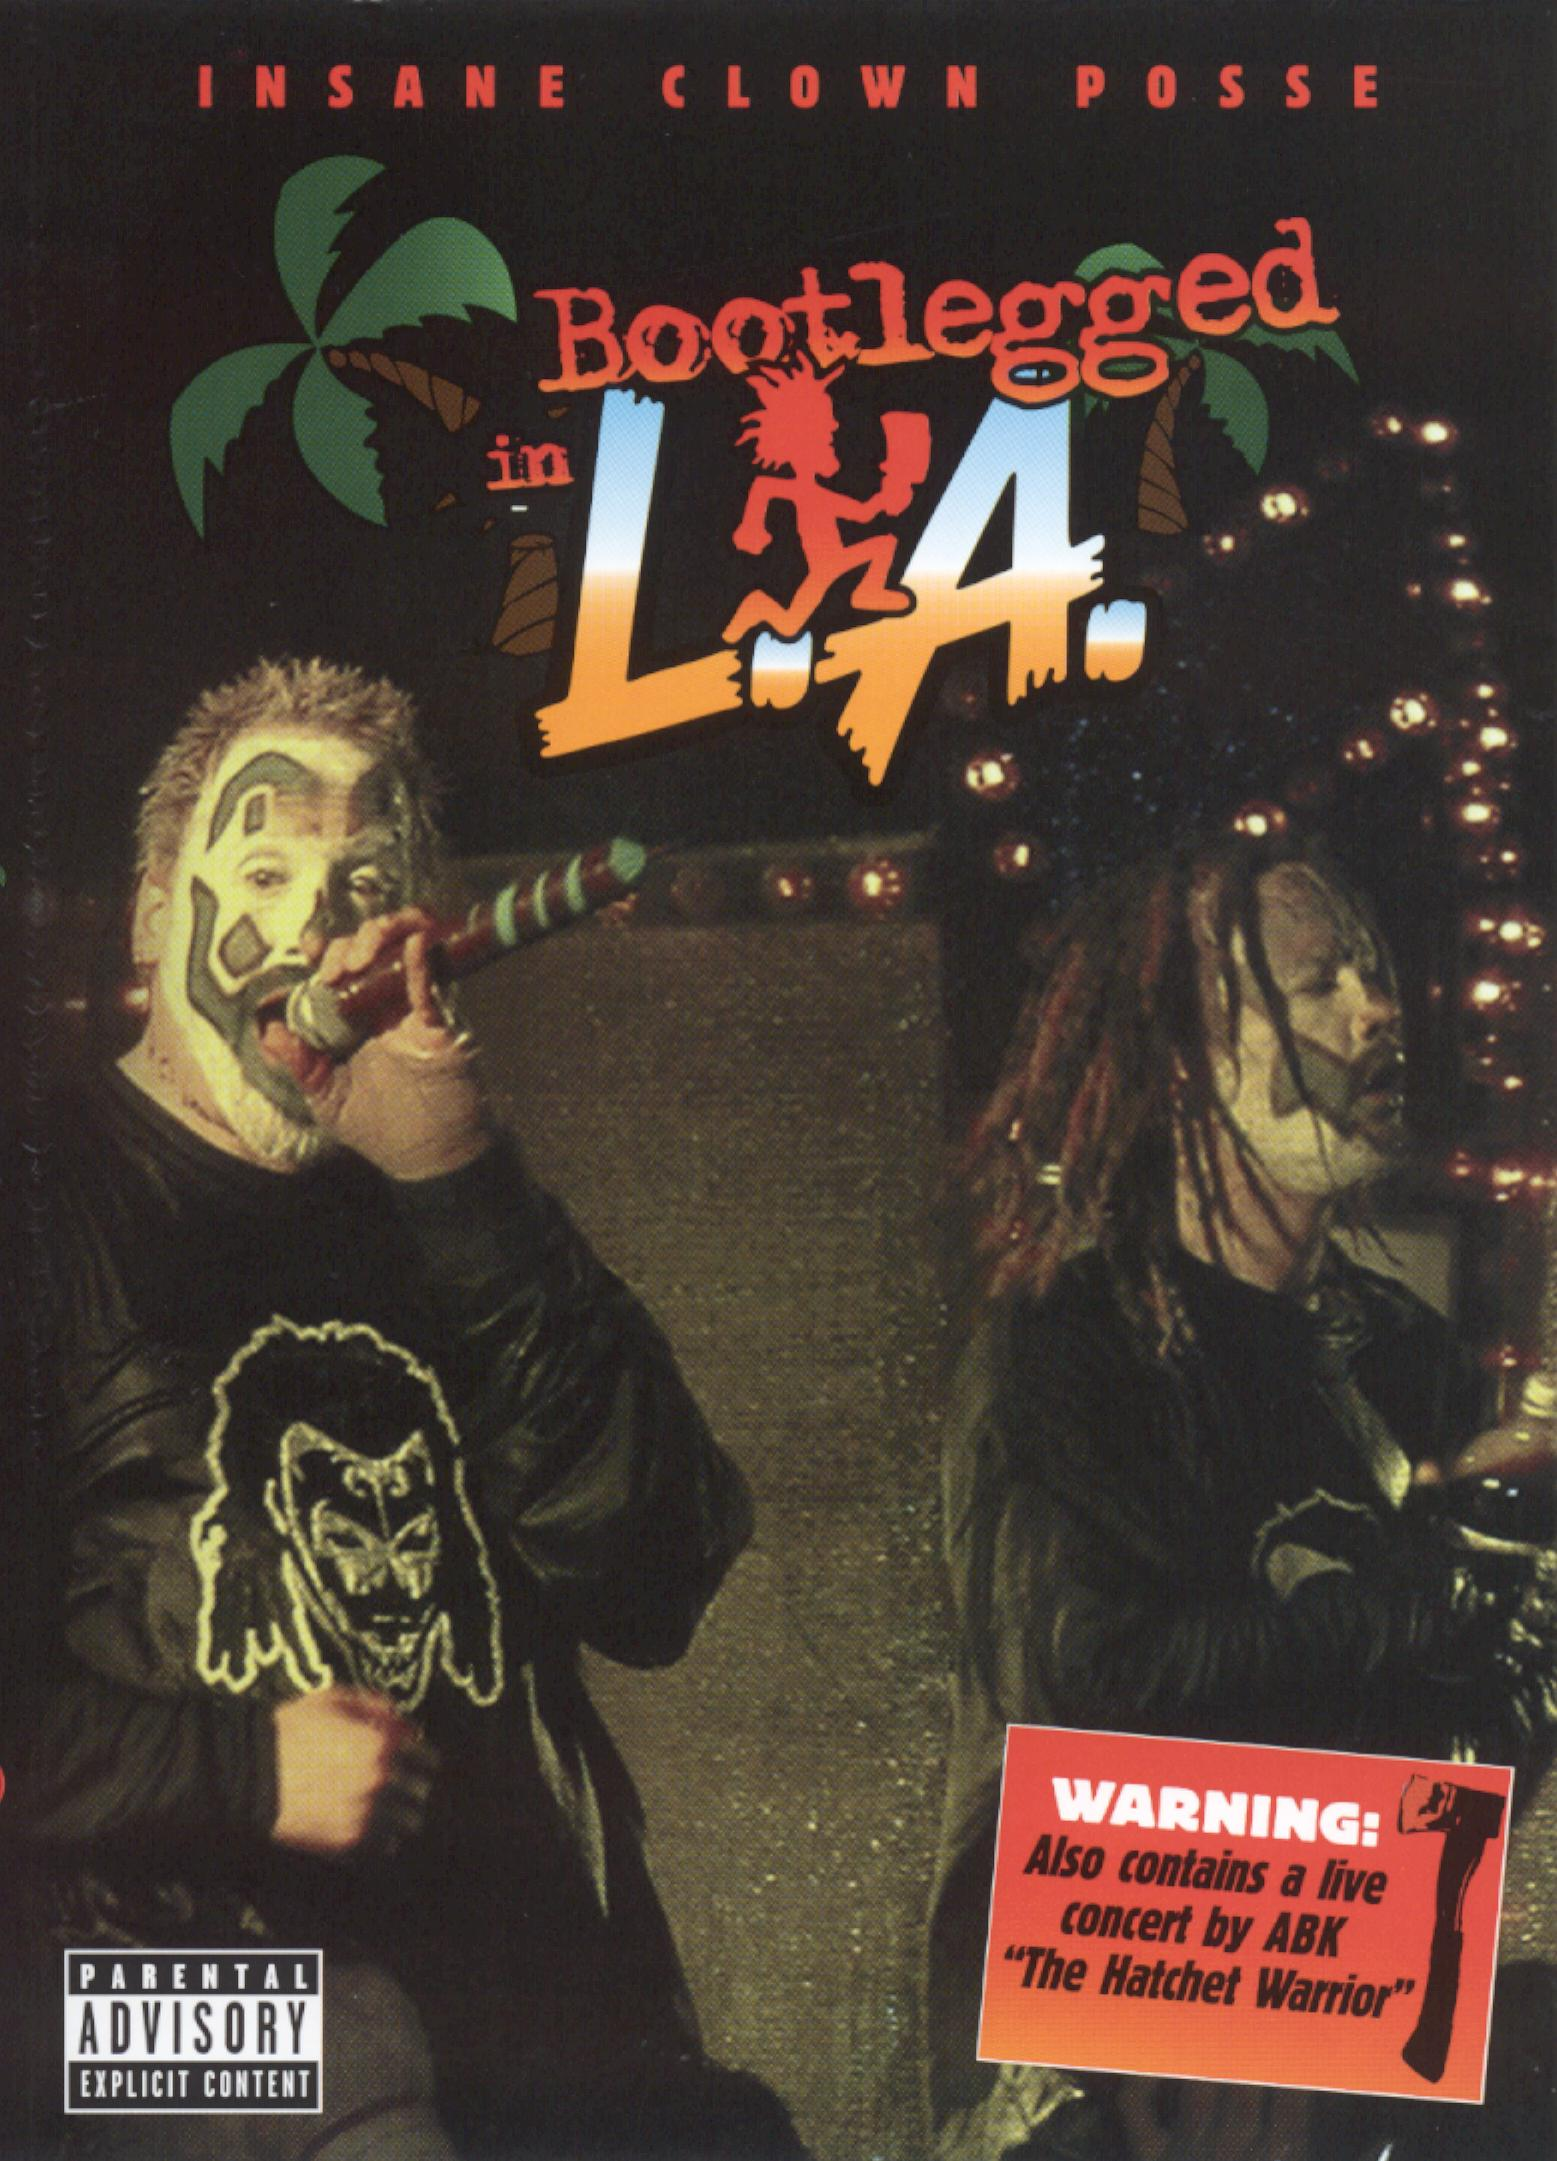 Insane Clown Posse: Bootlegged in L.A.